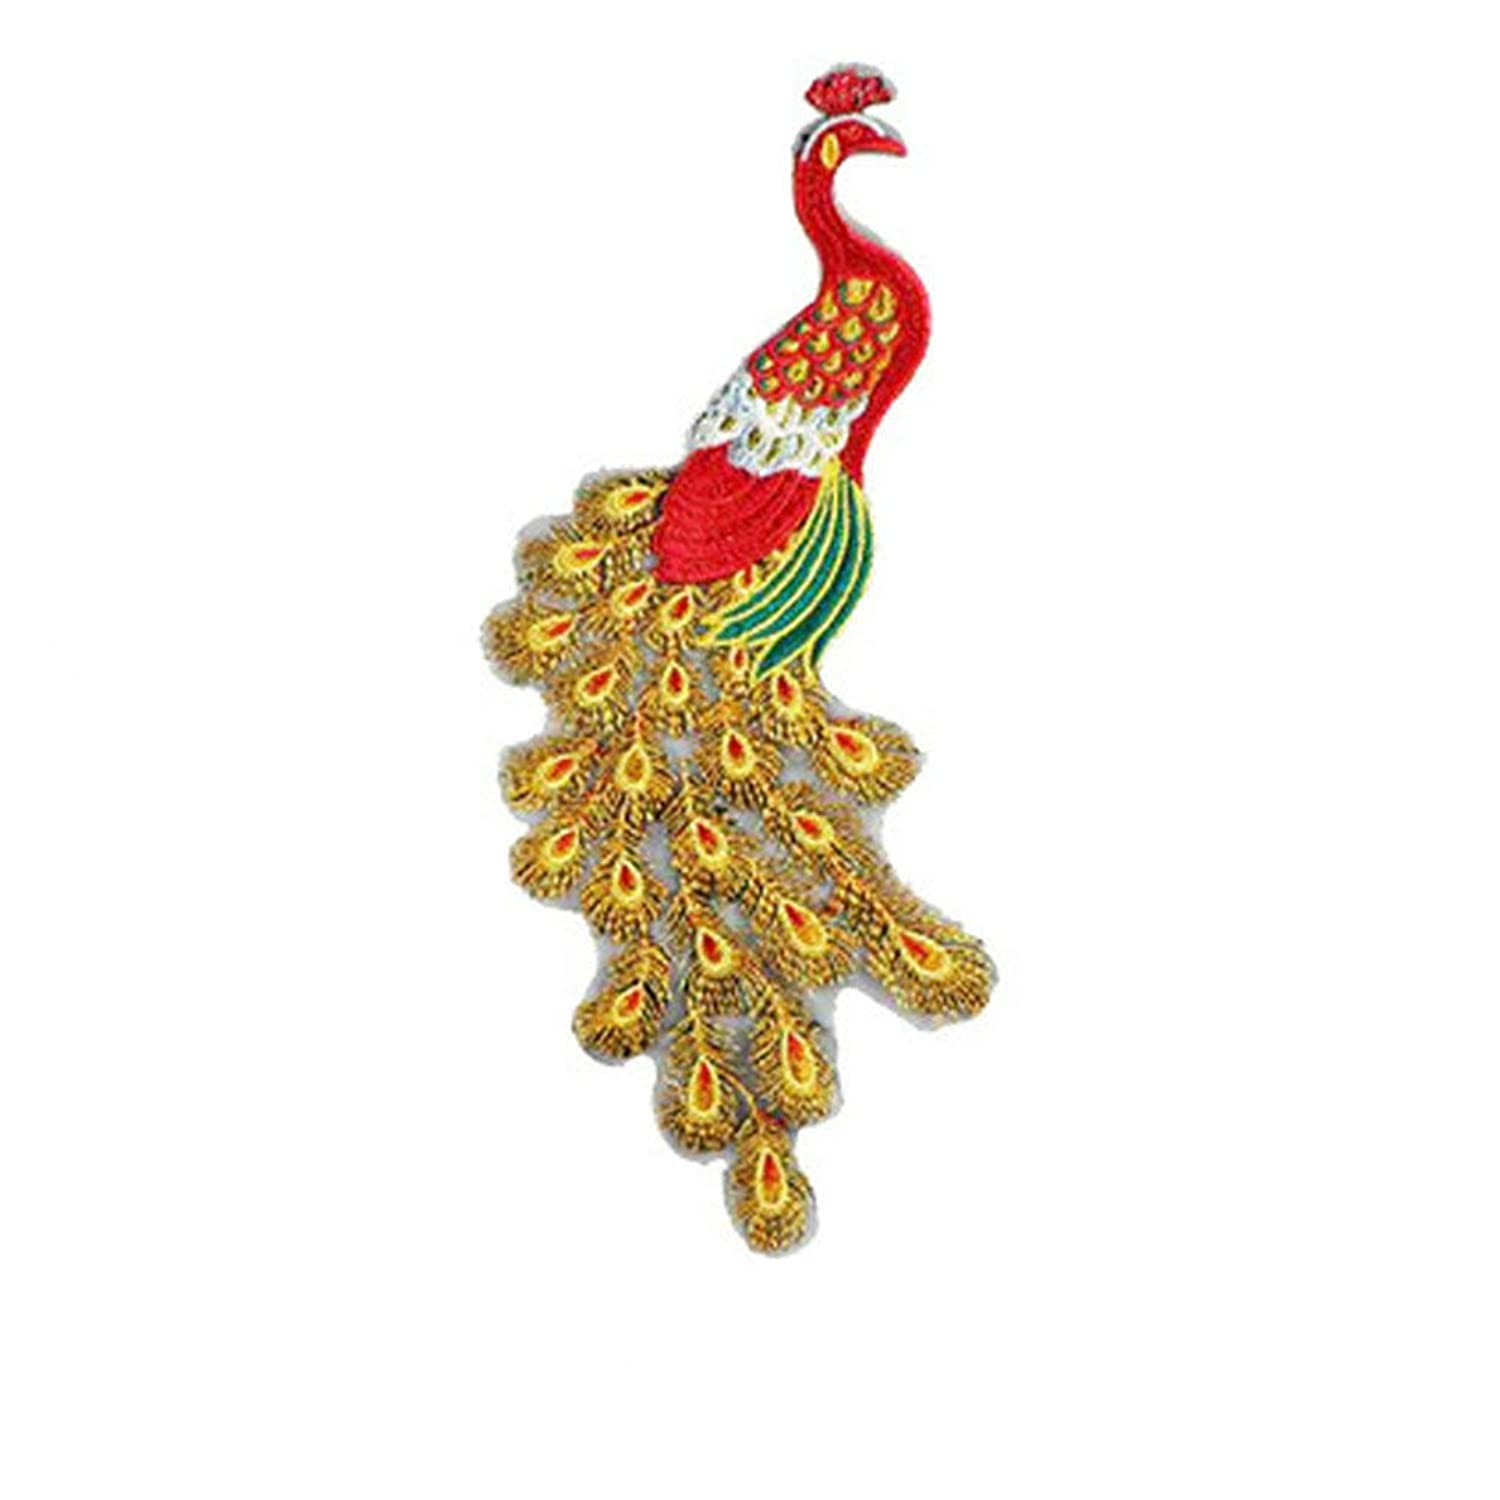 Beautiful Peacock Flower Sequins Embroidery Patch for Sewing on Clothes Applique DIY Crafts Handmade Clothing Patches (red) tjheiq0021736